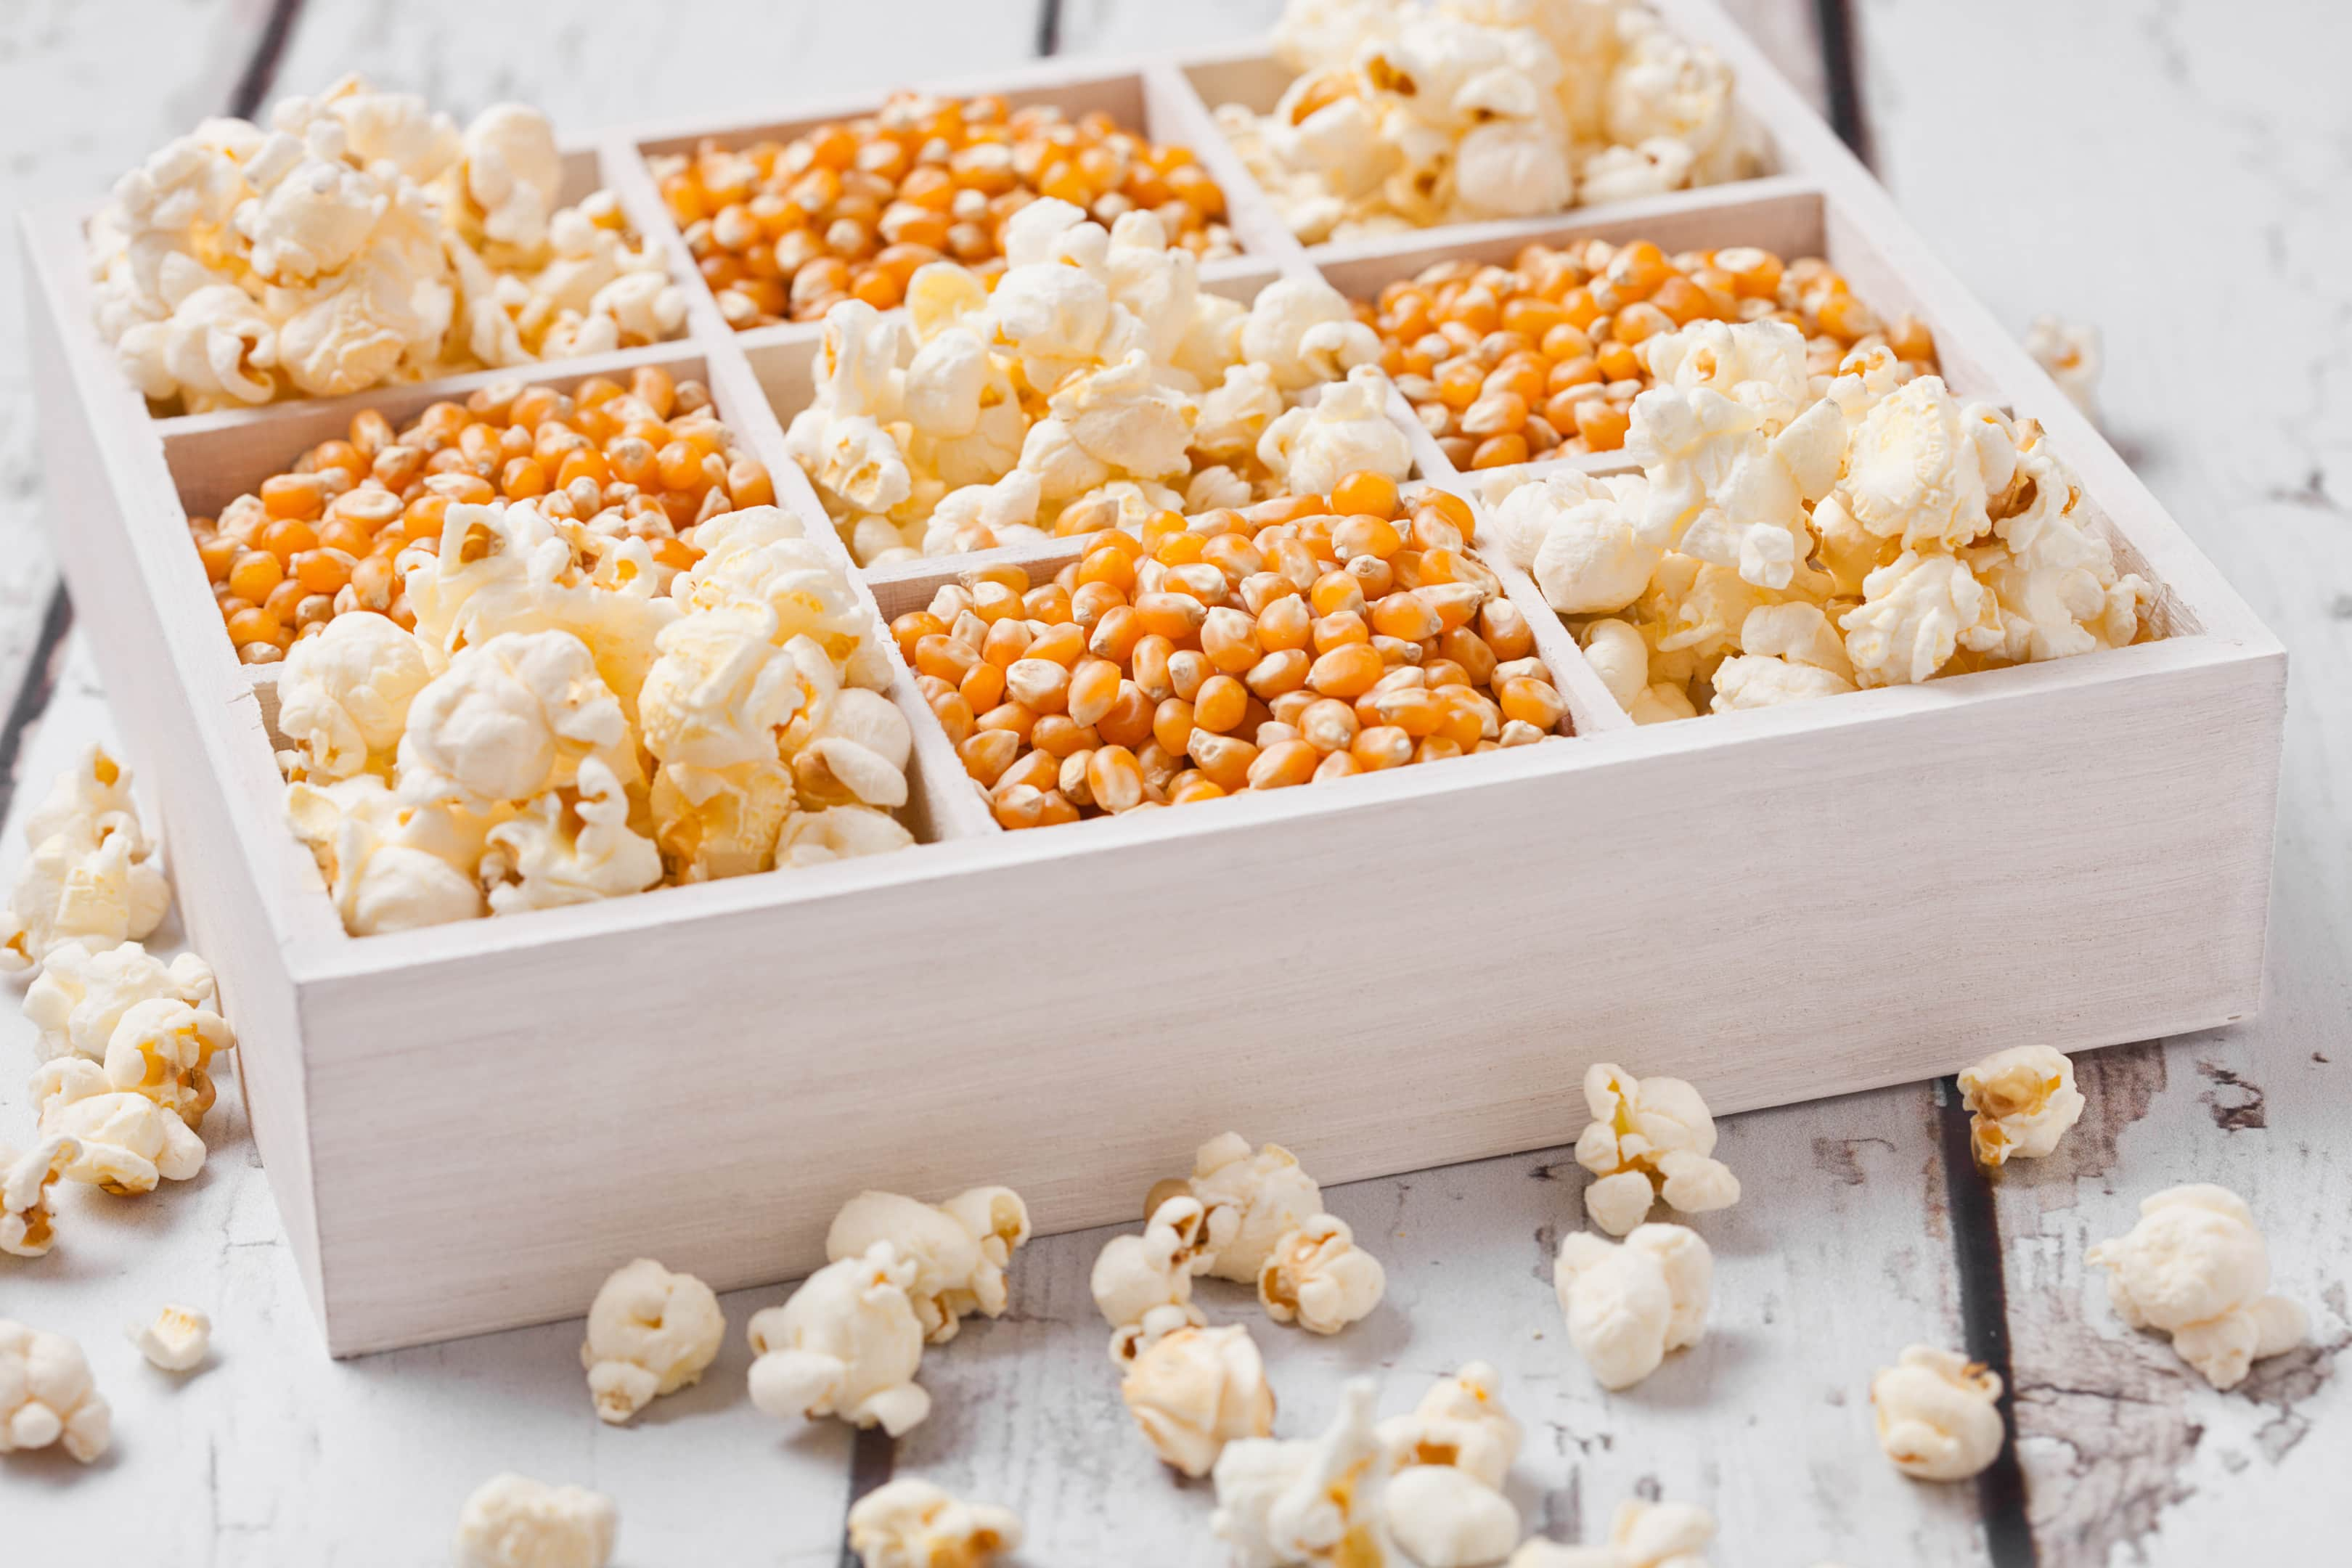 Raw corn seeds and popcorn in white wooden box